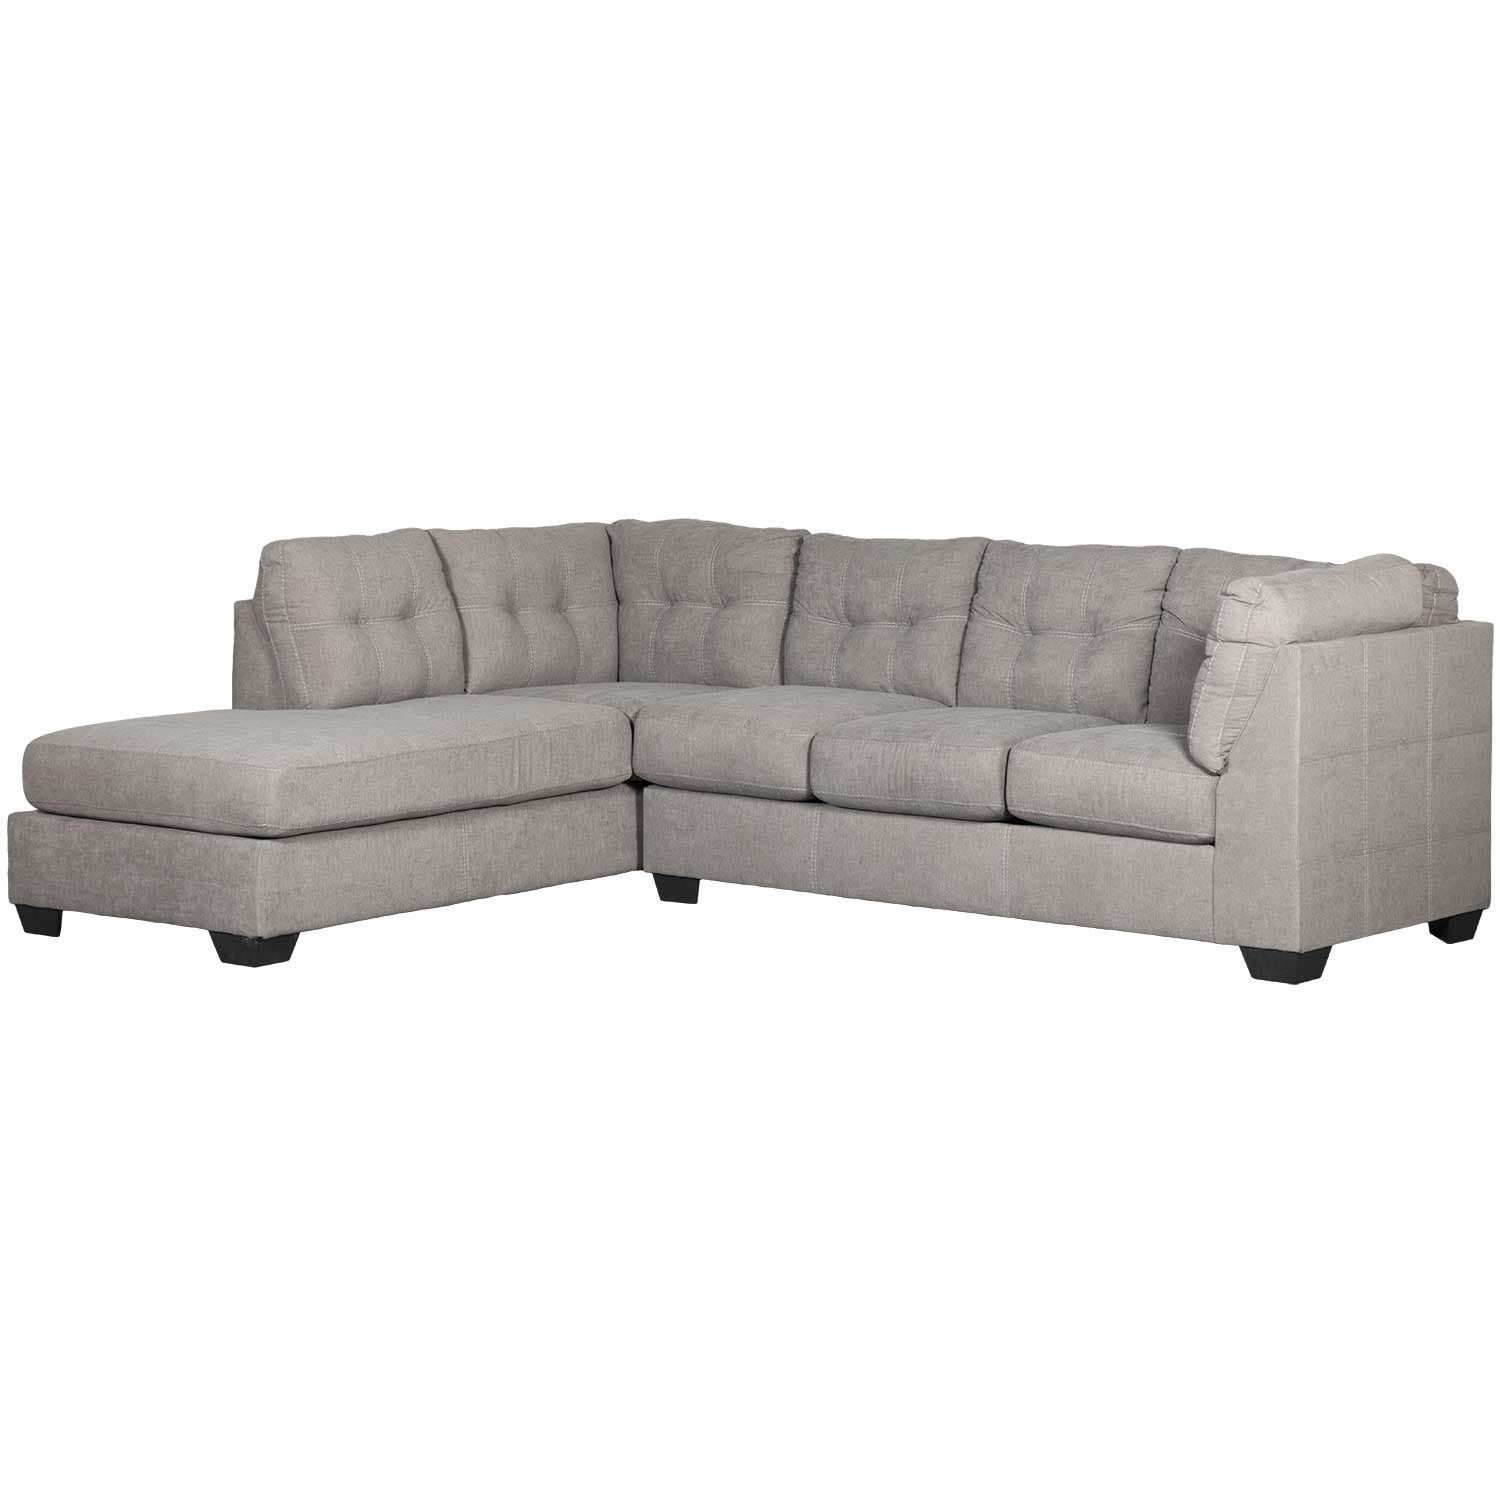 Maier Charcoal 2 Piece Sectional With Laf Chaise | 4520016/67 Throughout Arrowmask 2 Piece Sectionals With Laf Chaise (View 6 of 25)